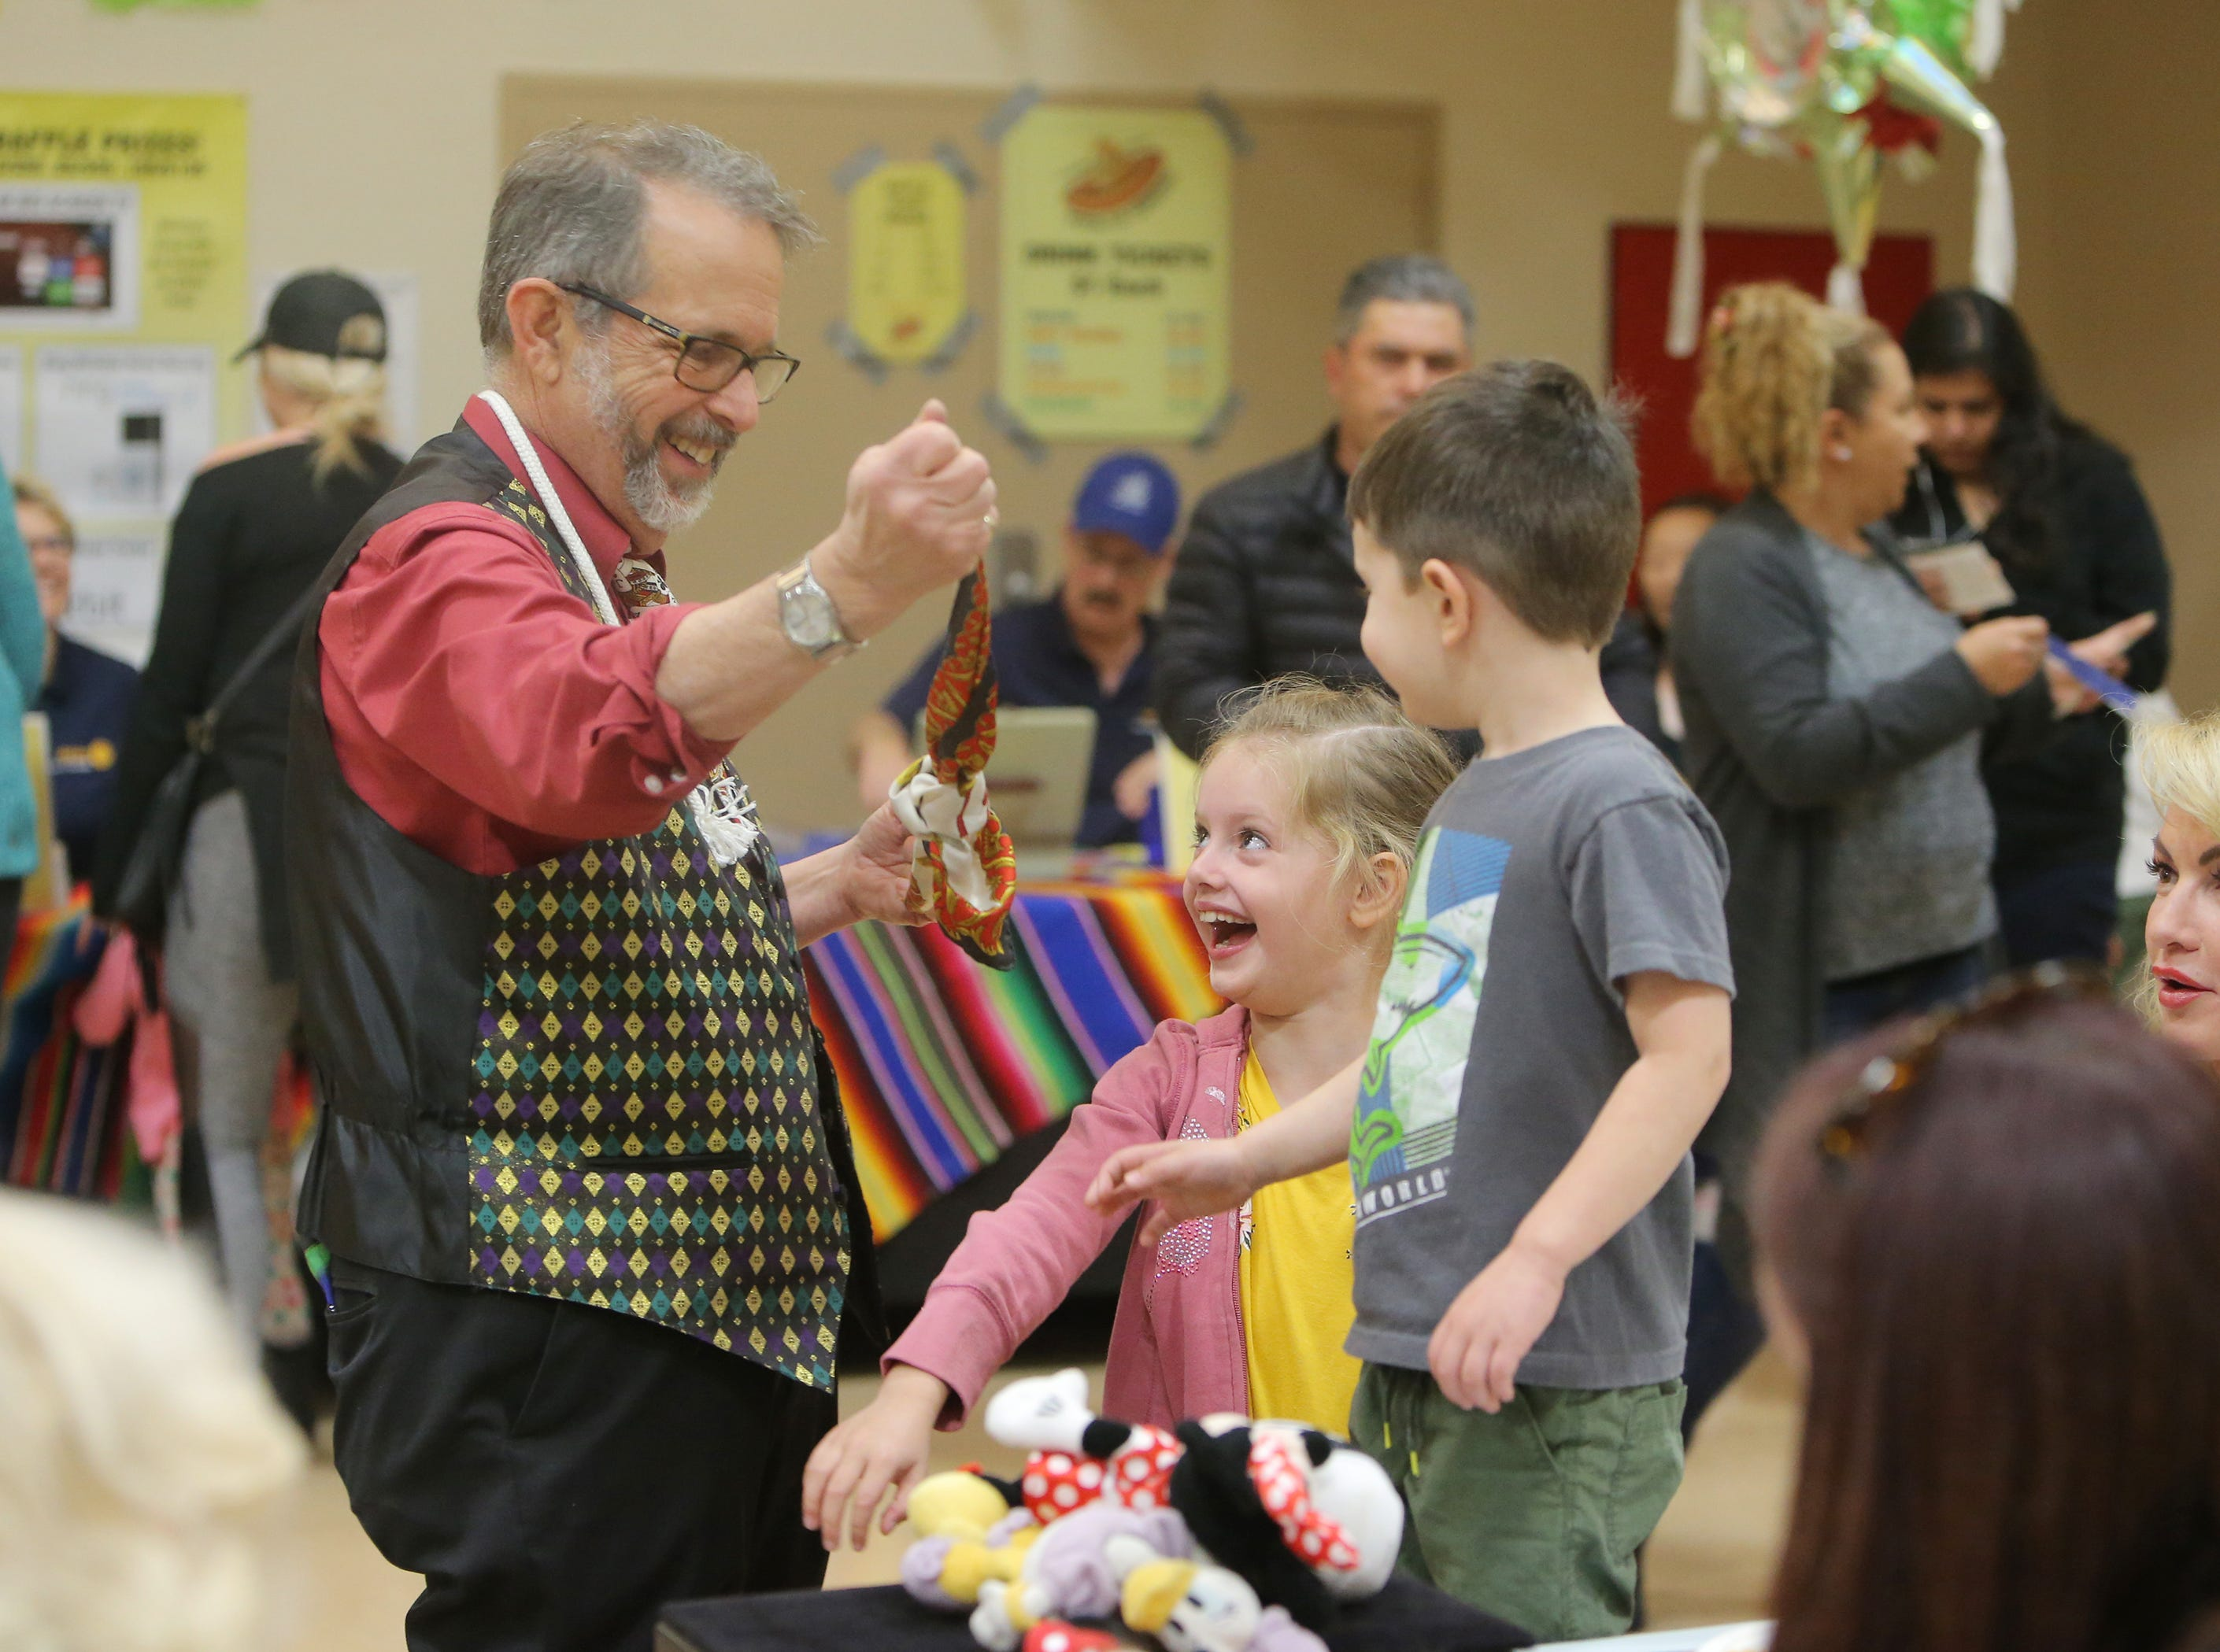 Rotary Club of Camarillo member and magician Paul Dwork performs a trick for Parker Jones and her brother Adam Jones during the annual Viva la Comida Dinner and Fiesta fundraiser on Monday at the Camarillo Community Center. Dwork has been doing magic for the event for 23 years.